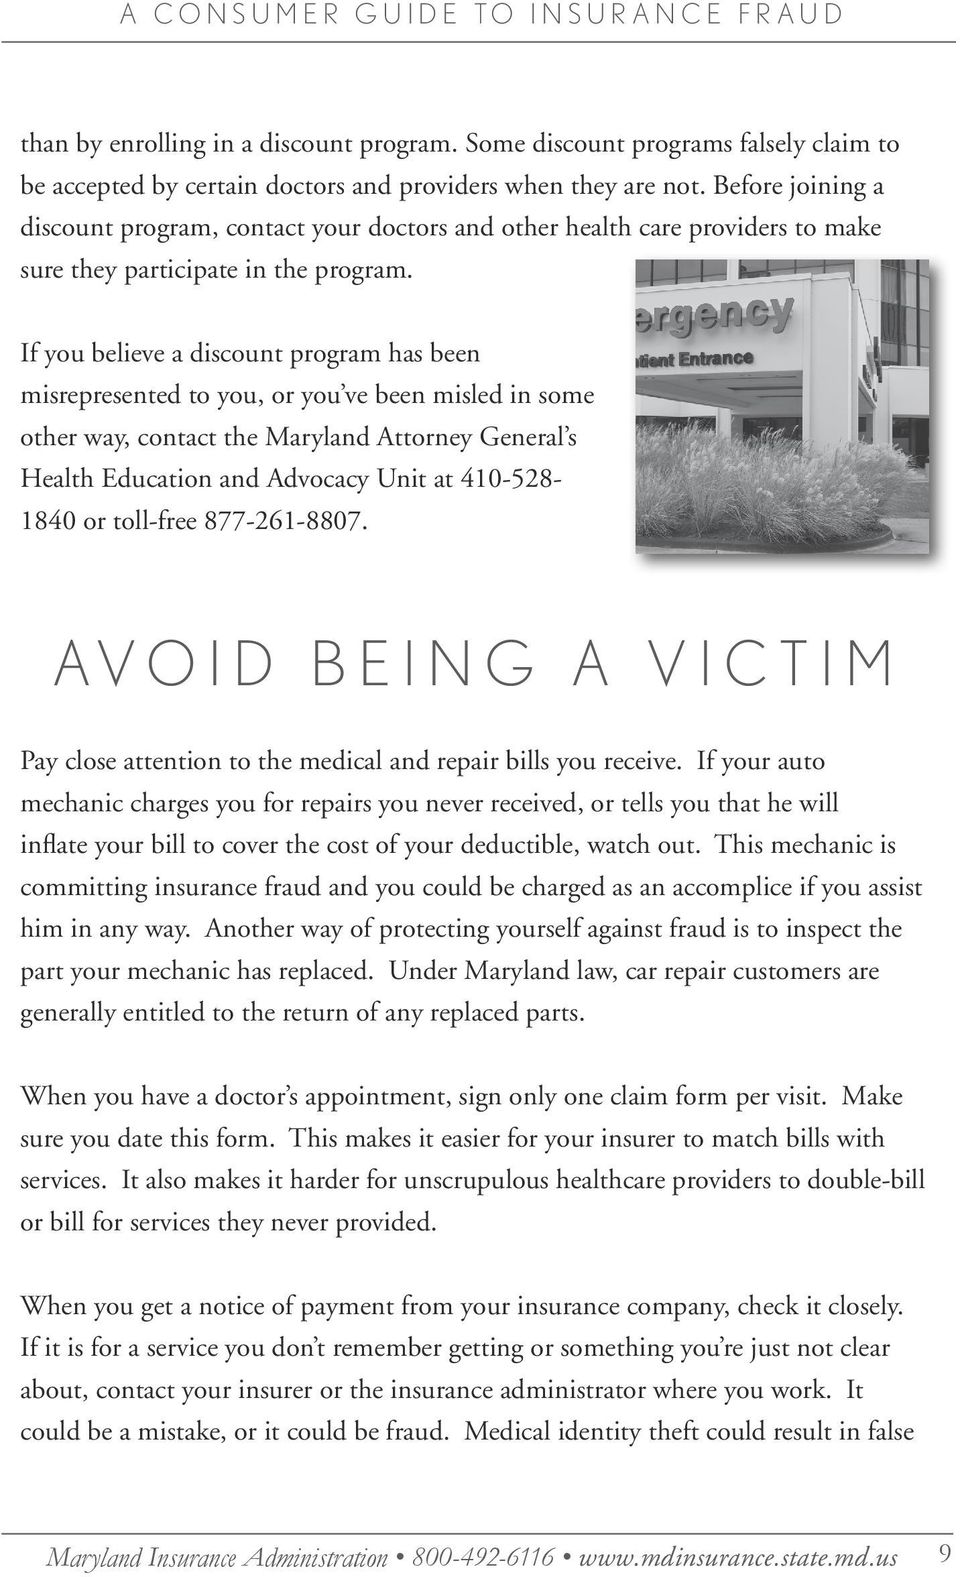 If you believe a discount program has been misrepresented to you, or you ve been misled in some other way, contact the Maryland Attorney General s Health Education and Advocacy Unit at 410-528- 1840